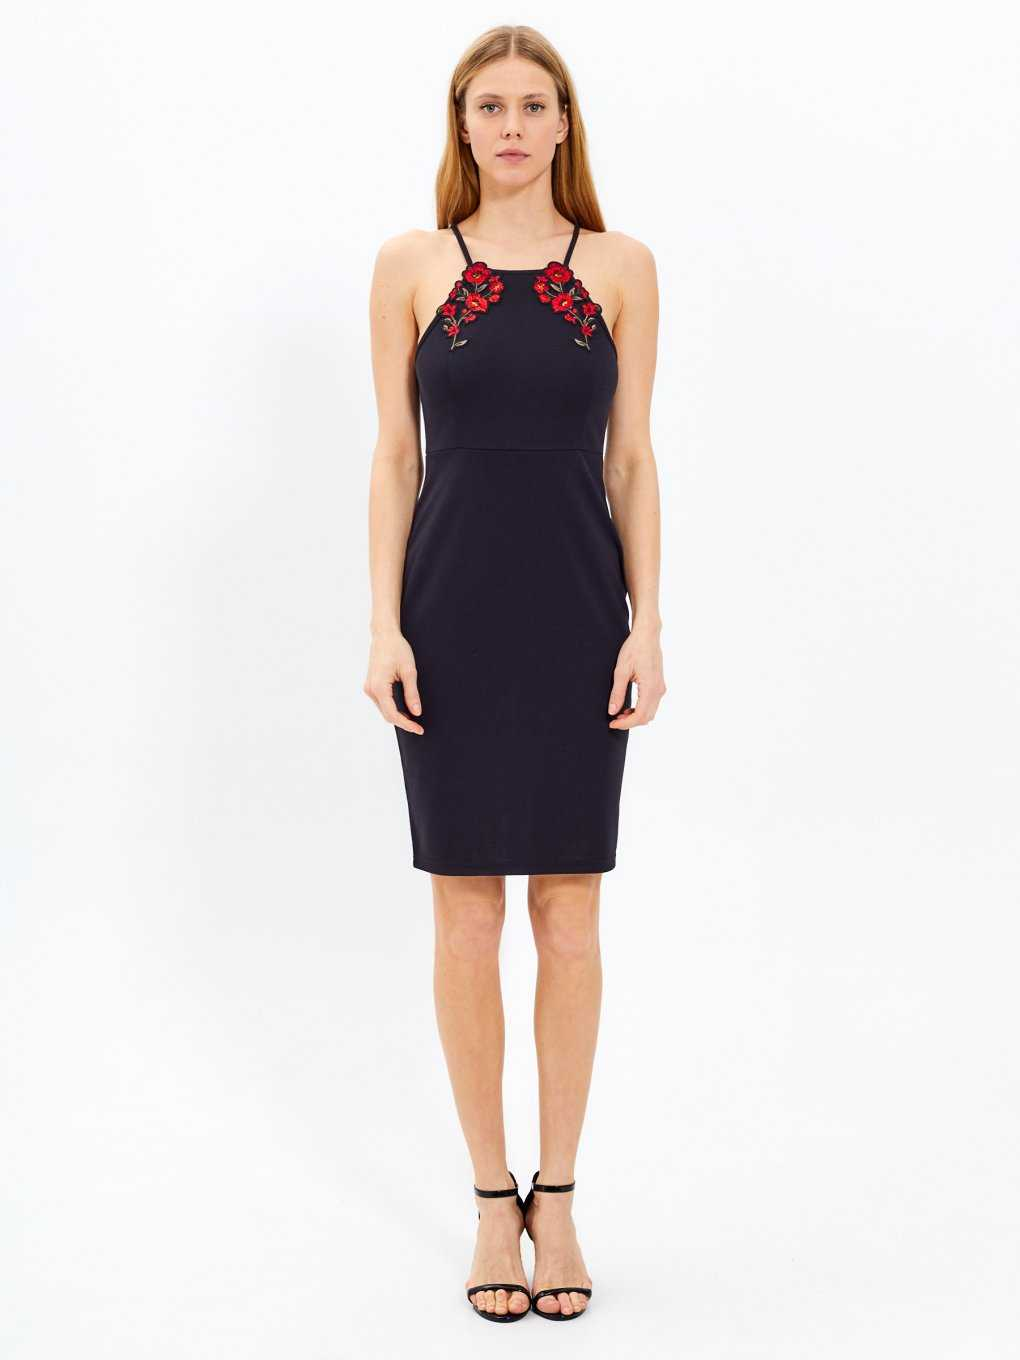 Halter neck dress with embroidery